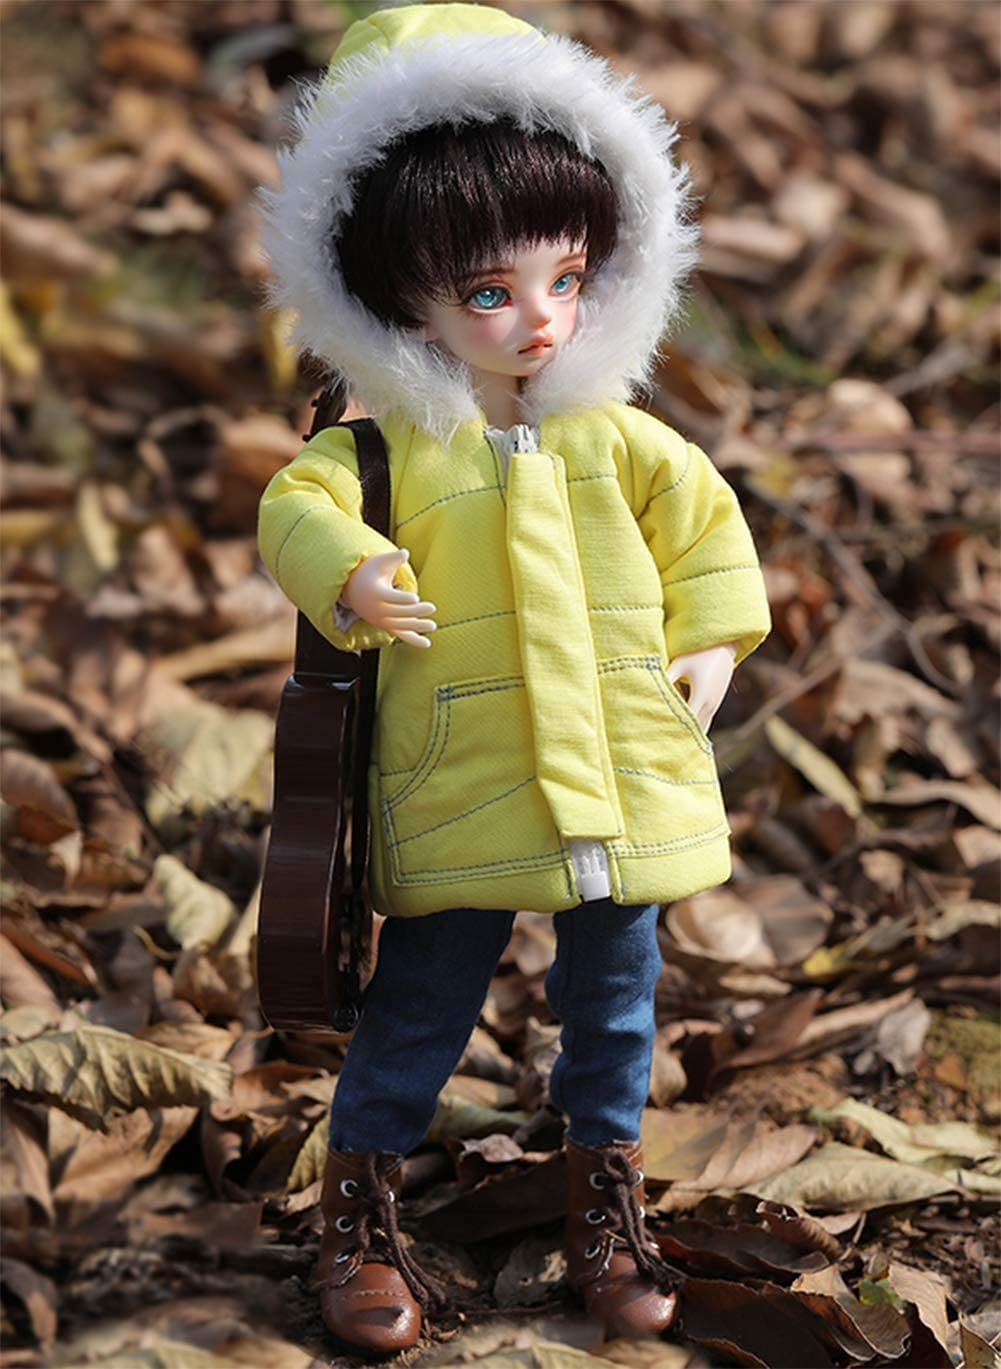 NIHE SD Dolls 1 6 Reservation 28.5cm Ball Limited price sale Bo Resin BJD Advanced Jointed Doll